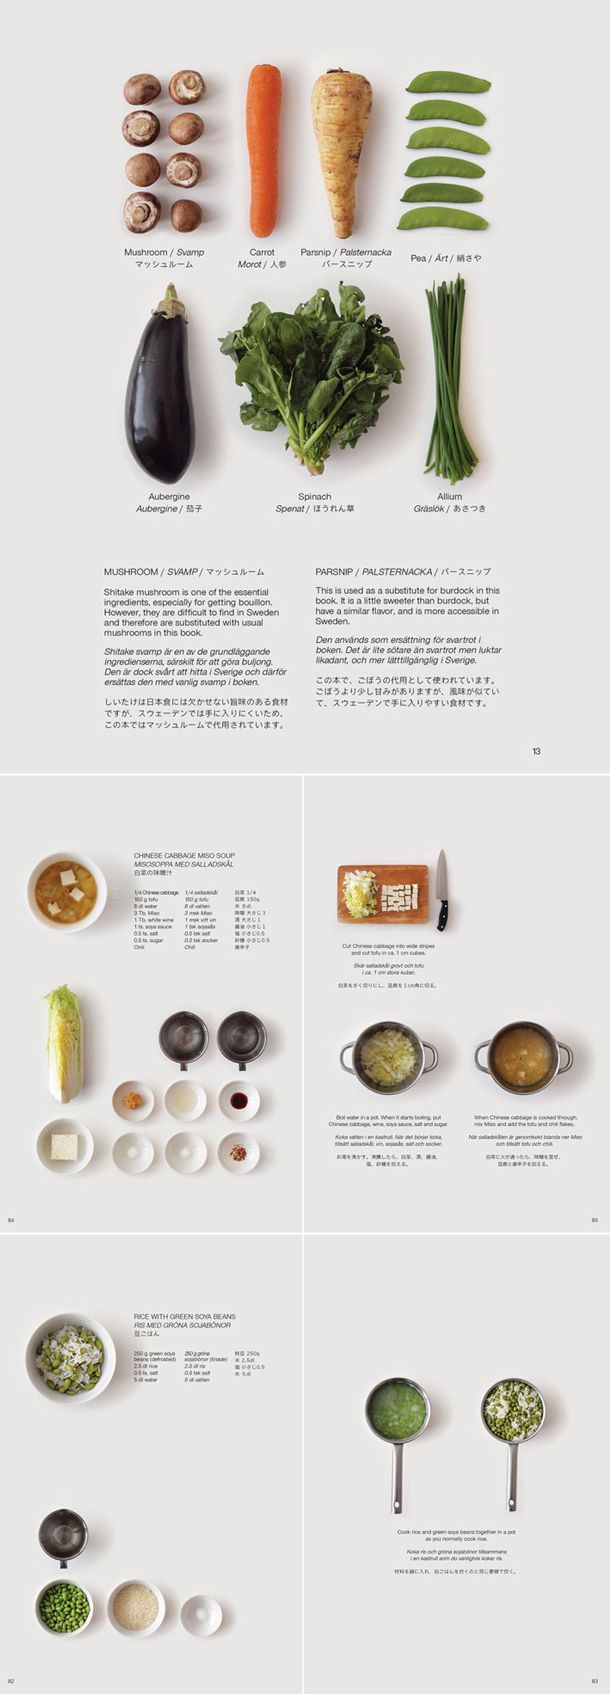 moé takemura's guide to the foreign japanese kitchen